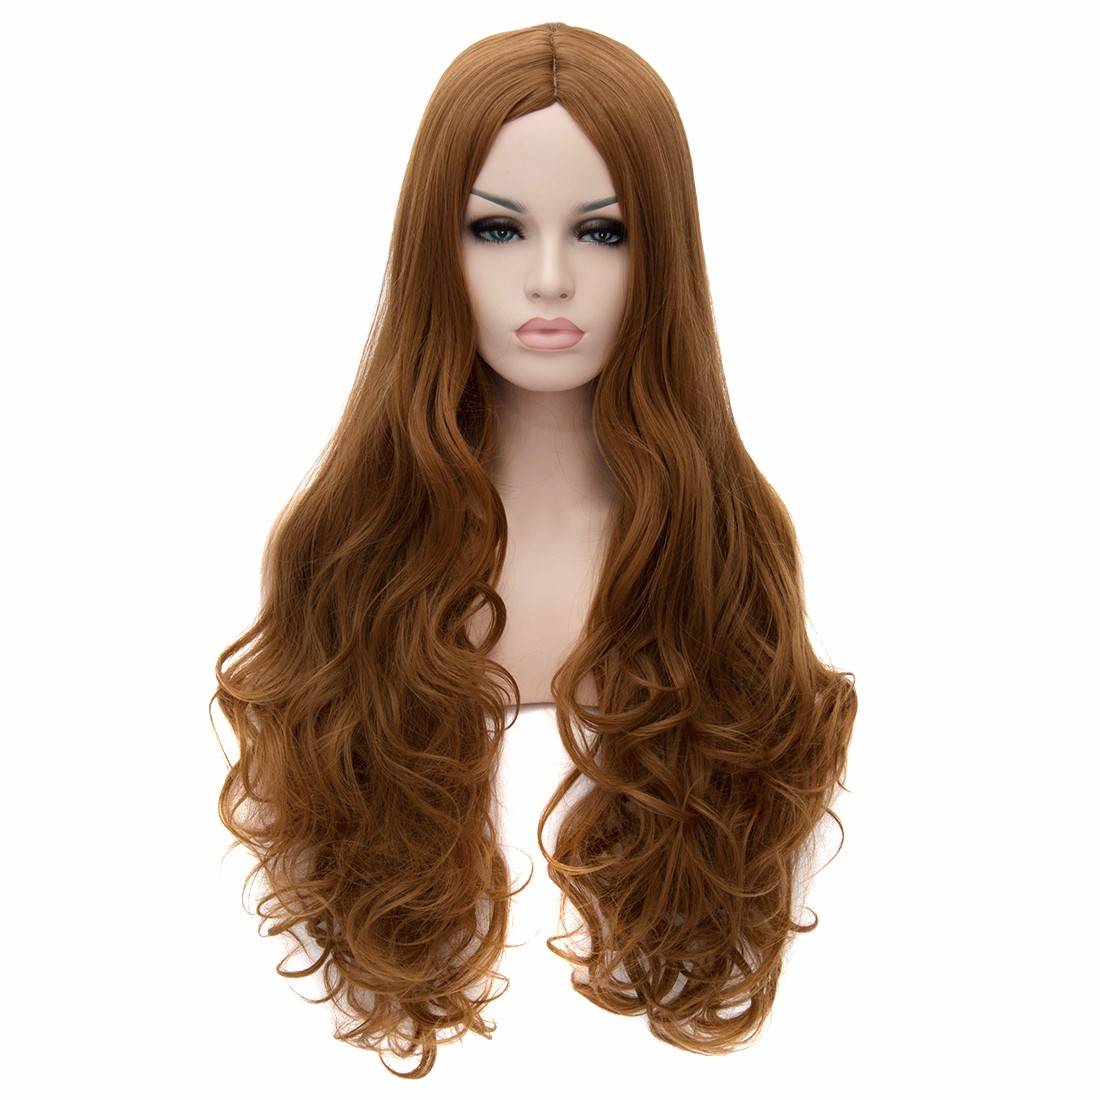 Brown Central Parting Big Wavy Curly Long Hairstyle Women Resistant Full Wigs<br><br>Aliexpress